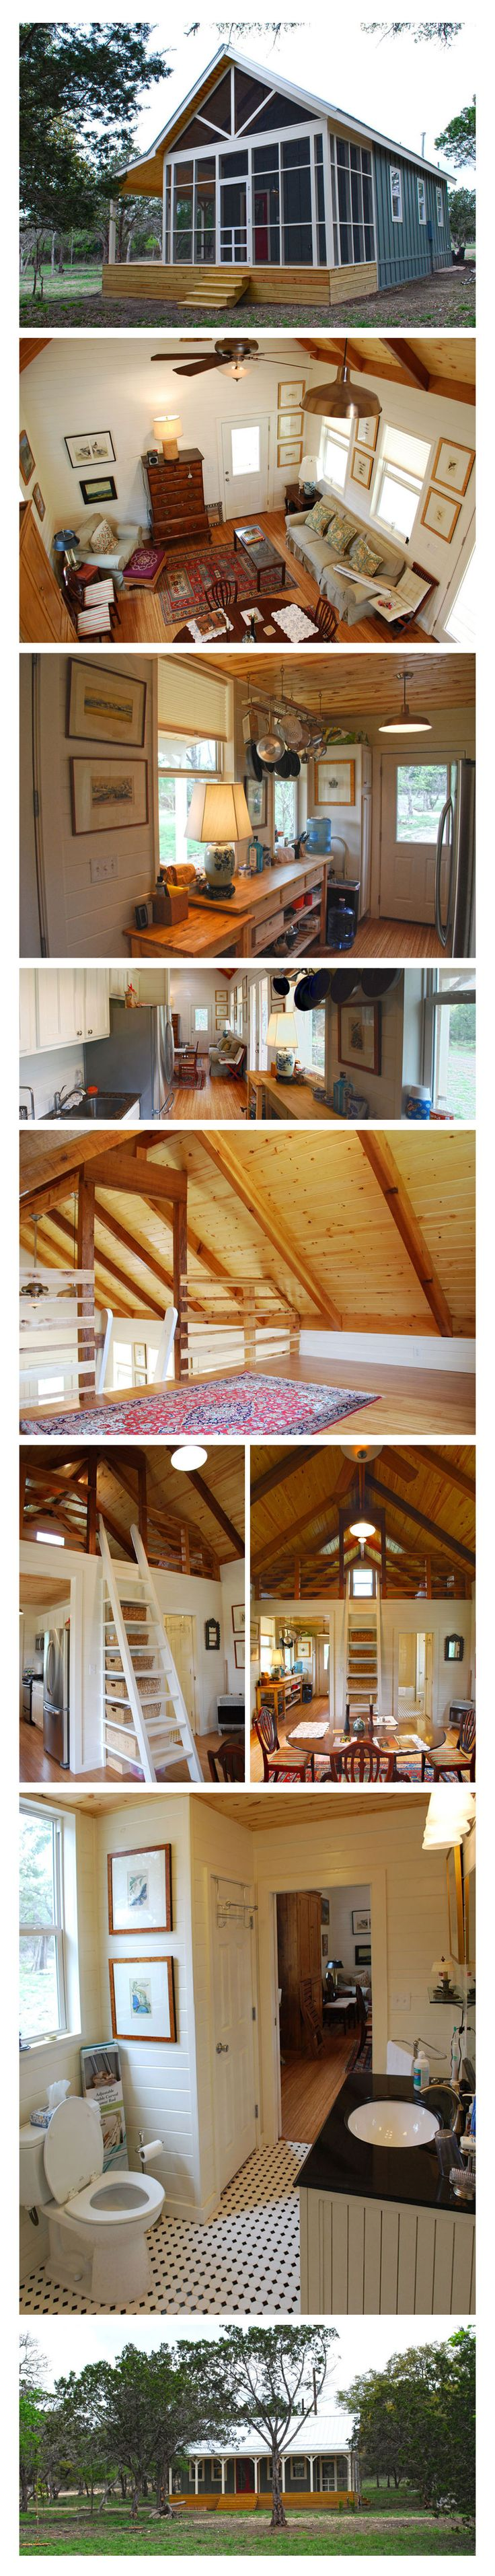 1866 best images about small houses on pinterest tiny for 110 square feet room